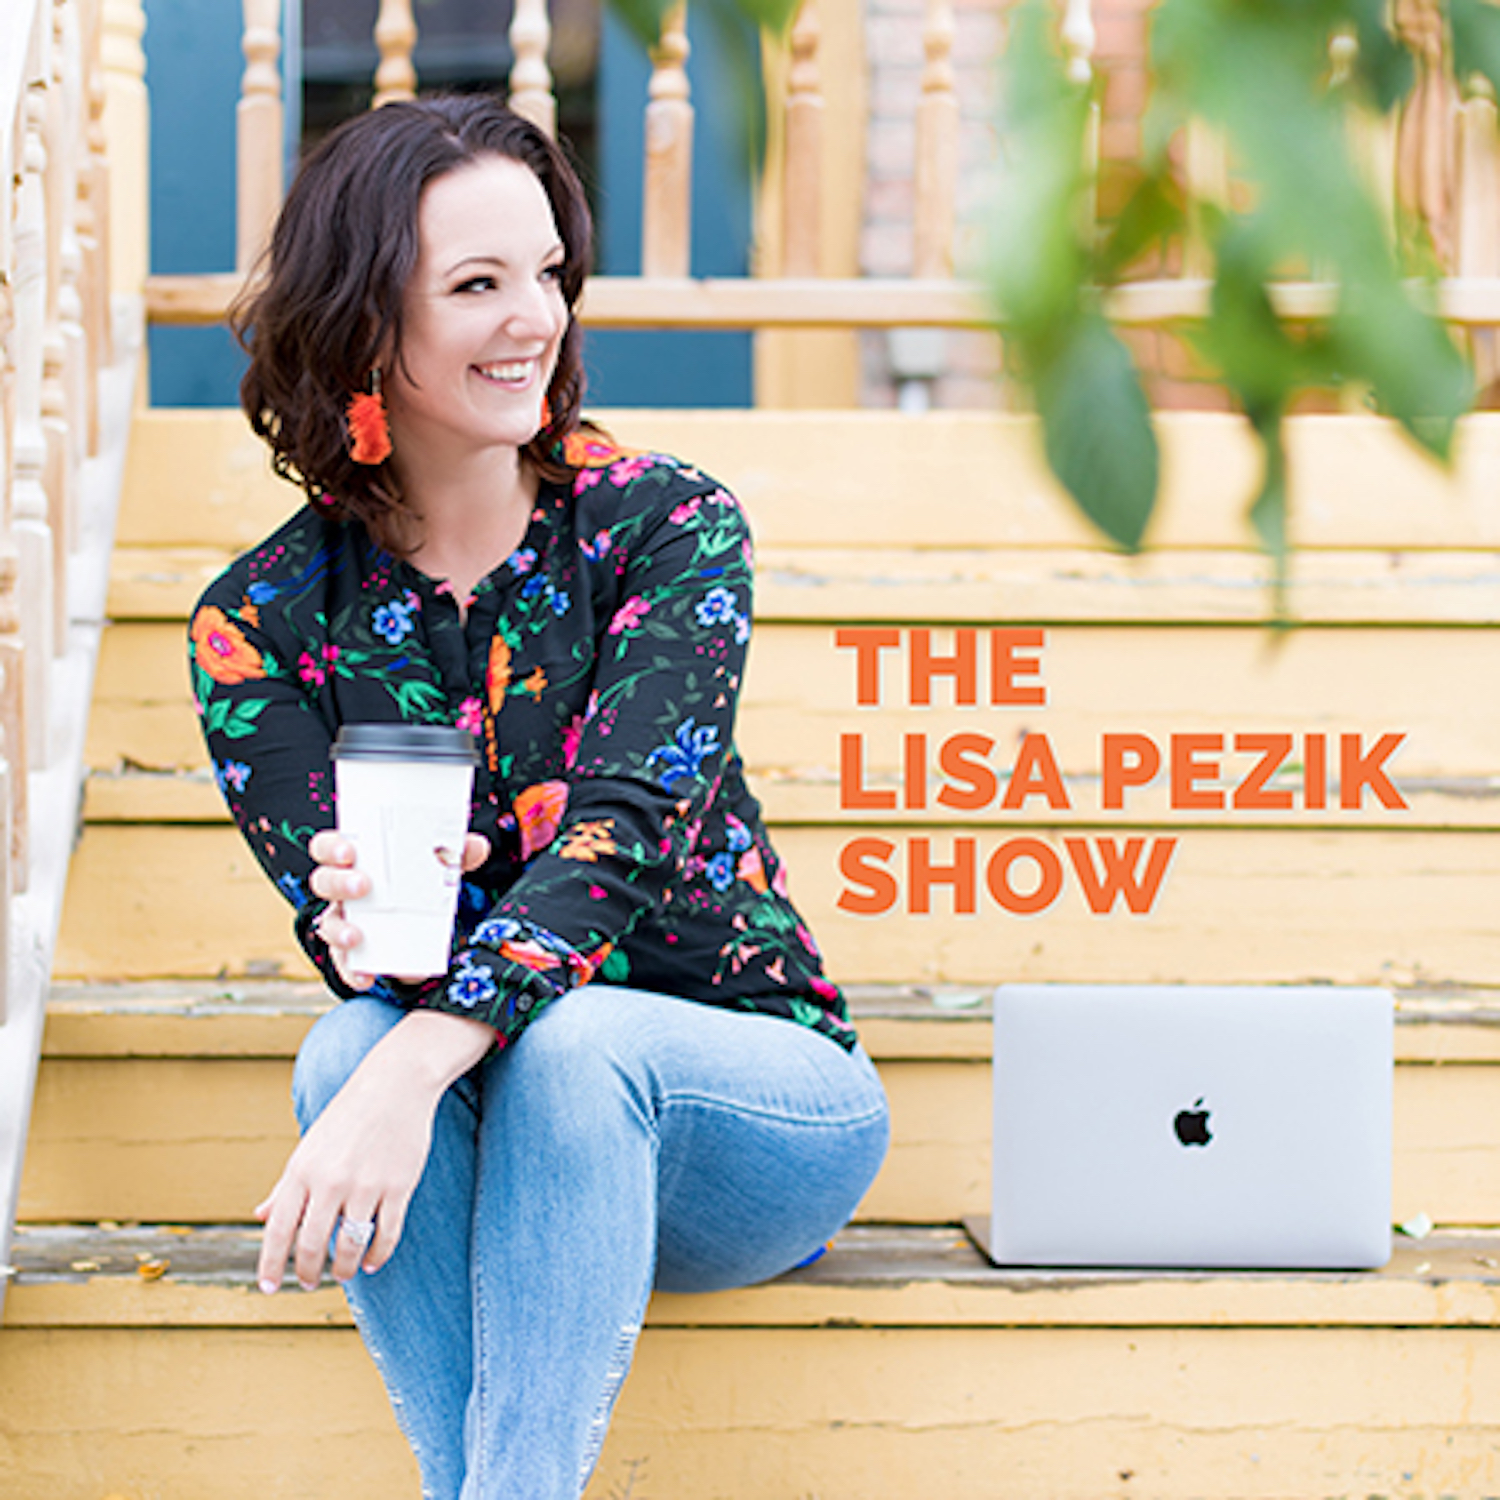 The Lisa Pezik Show